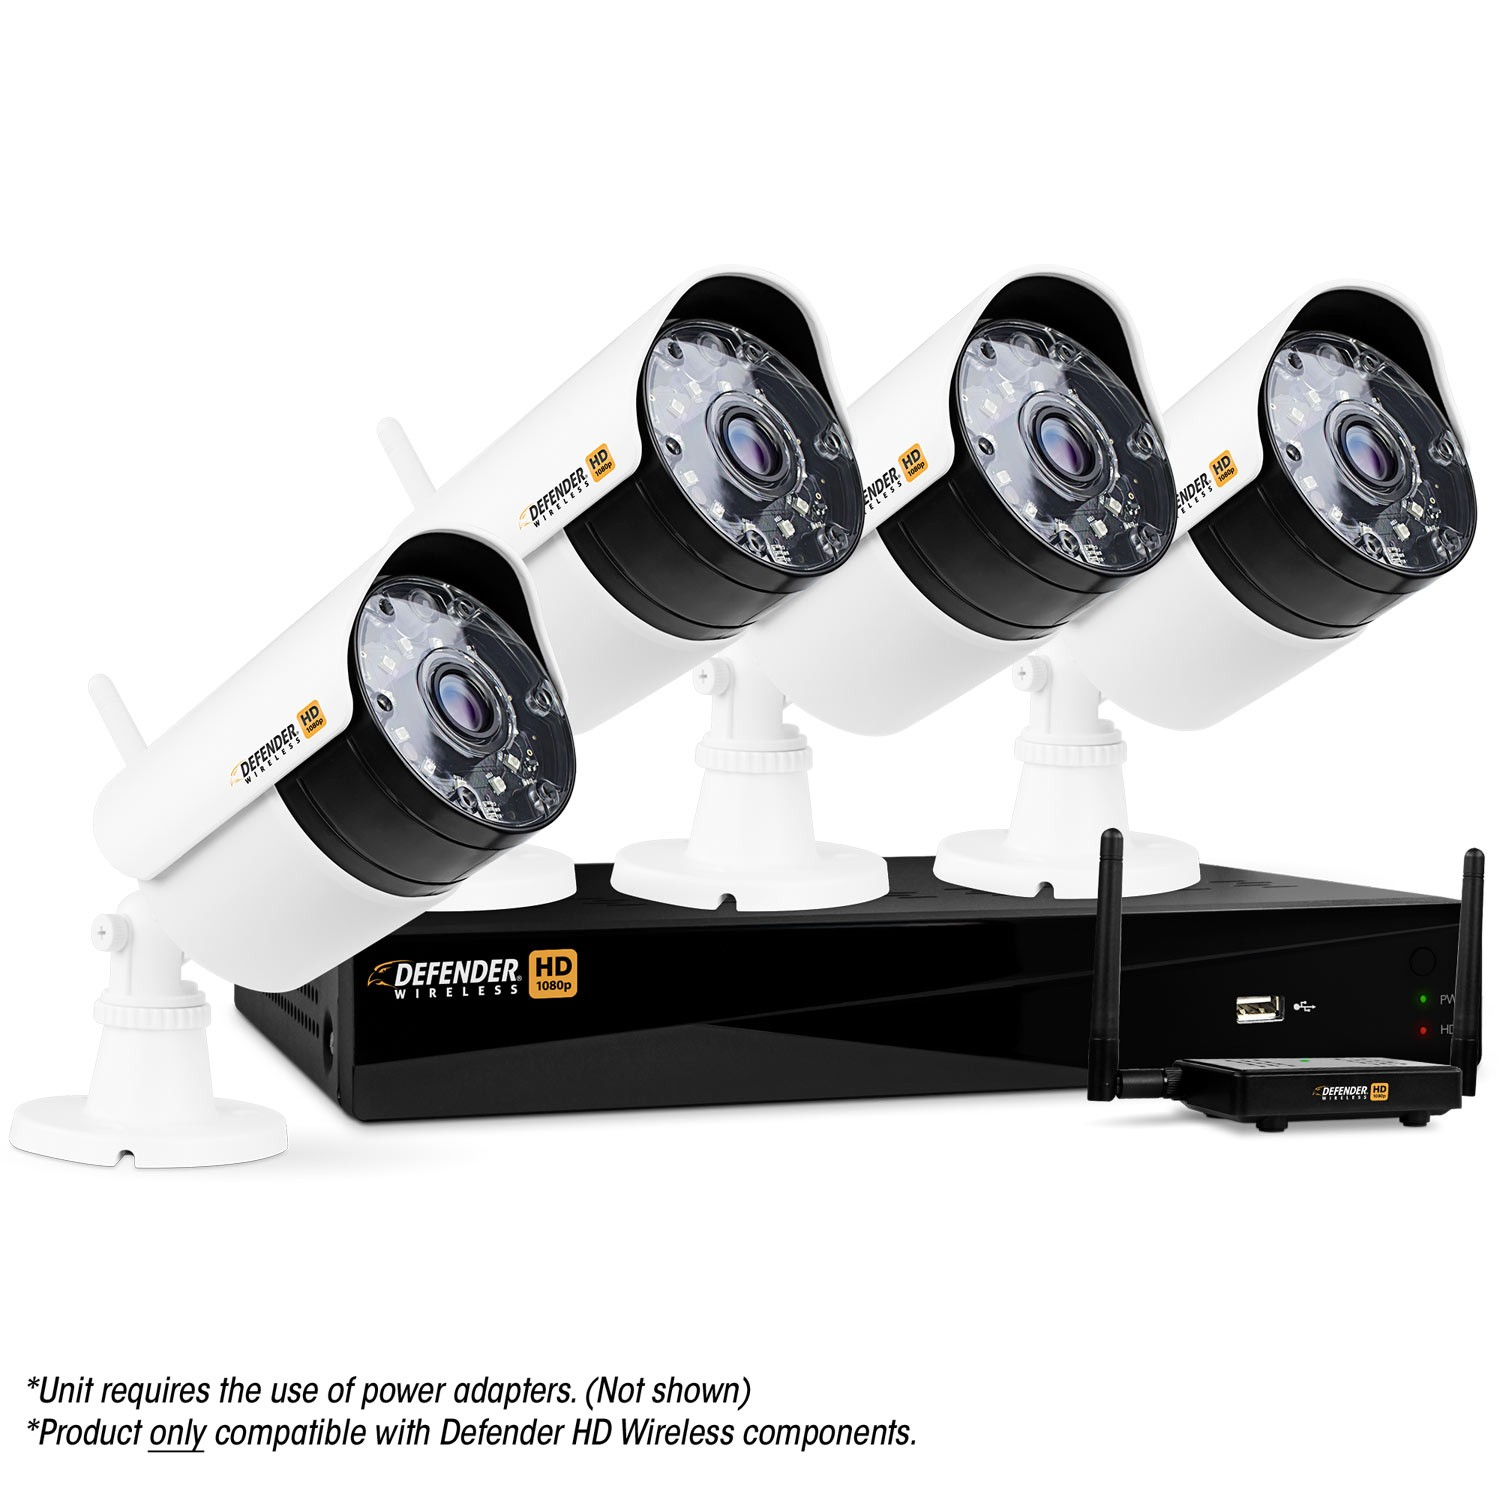 Defender Wireless HD 1080p 4 Channel 1TB DVR Security System with 4 Bullet Cameras